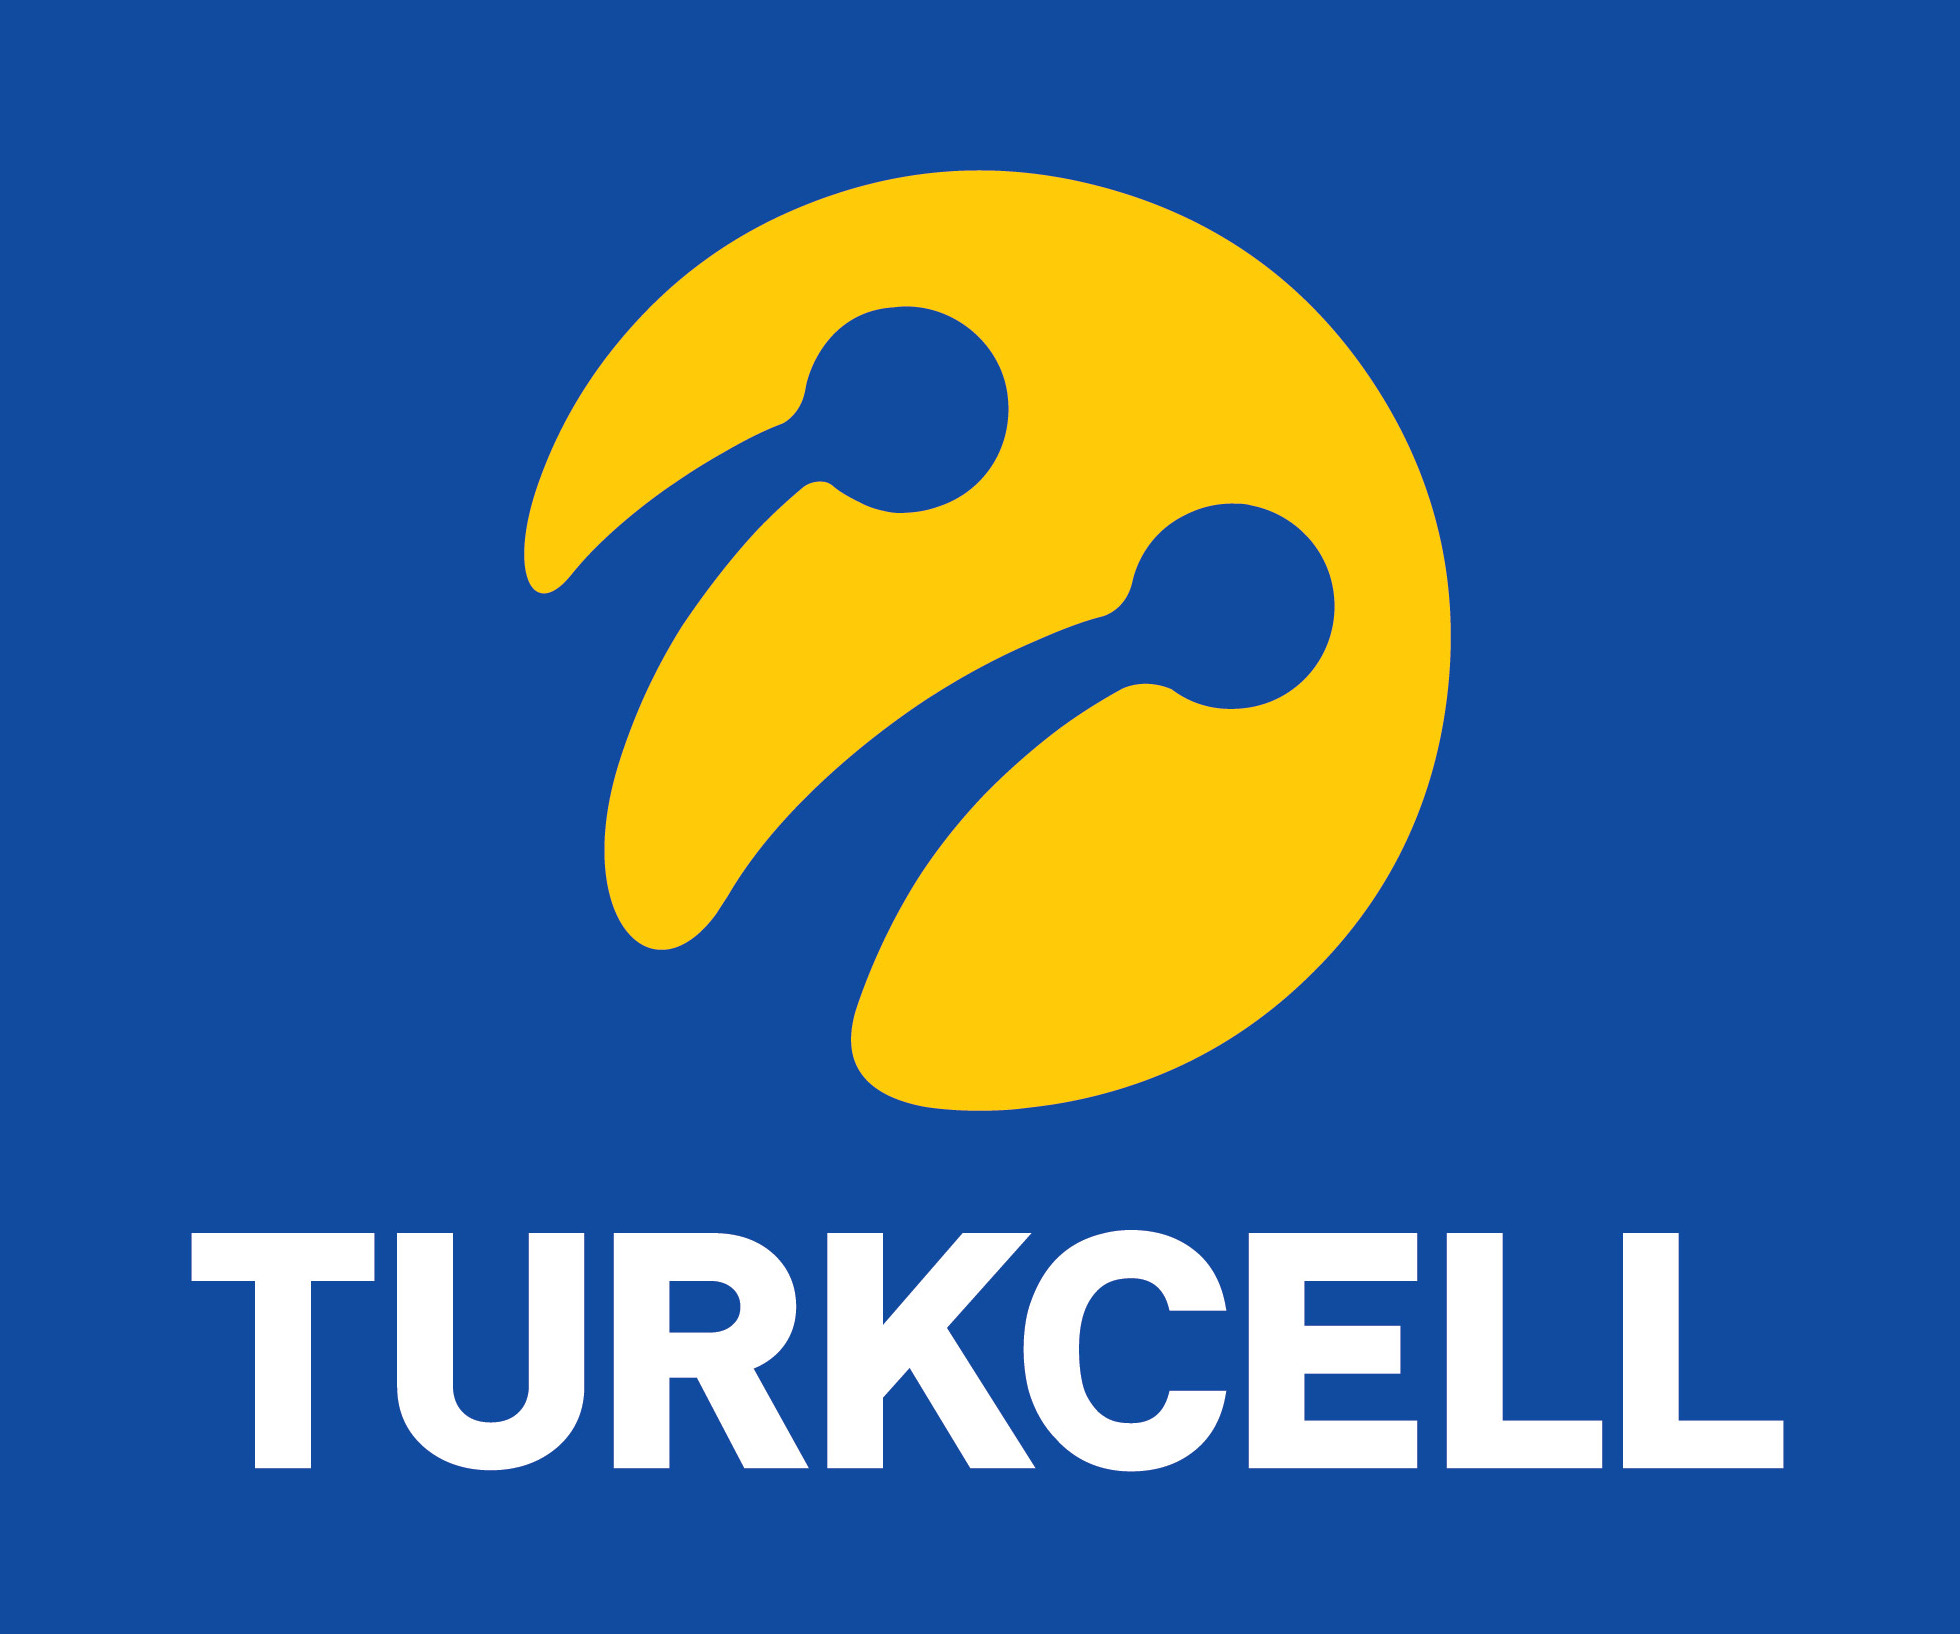 turkcell-pin-germany